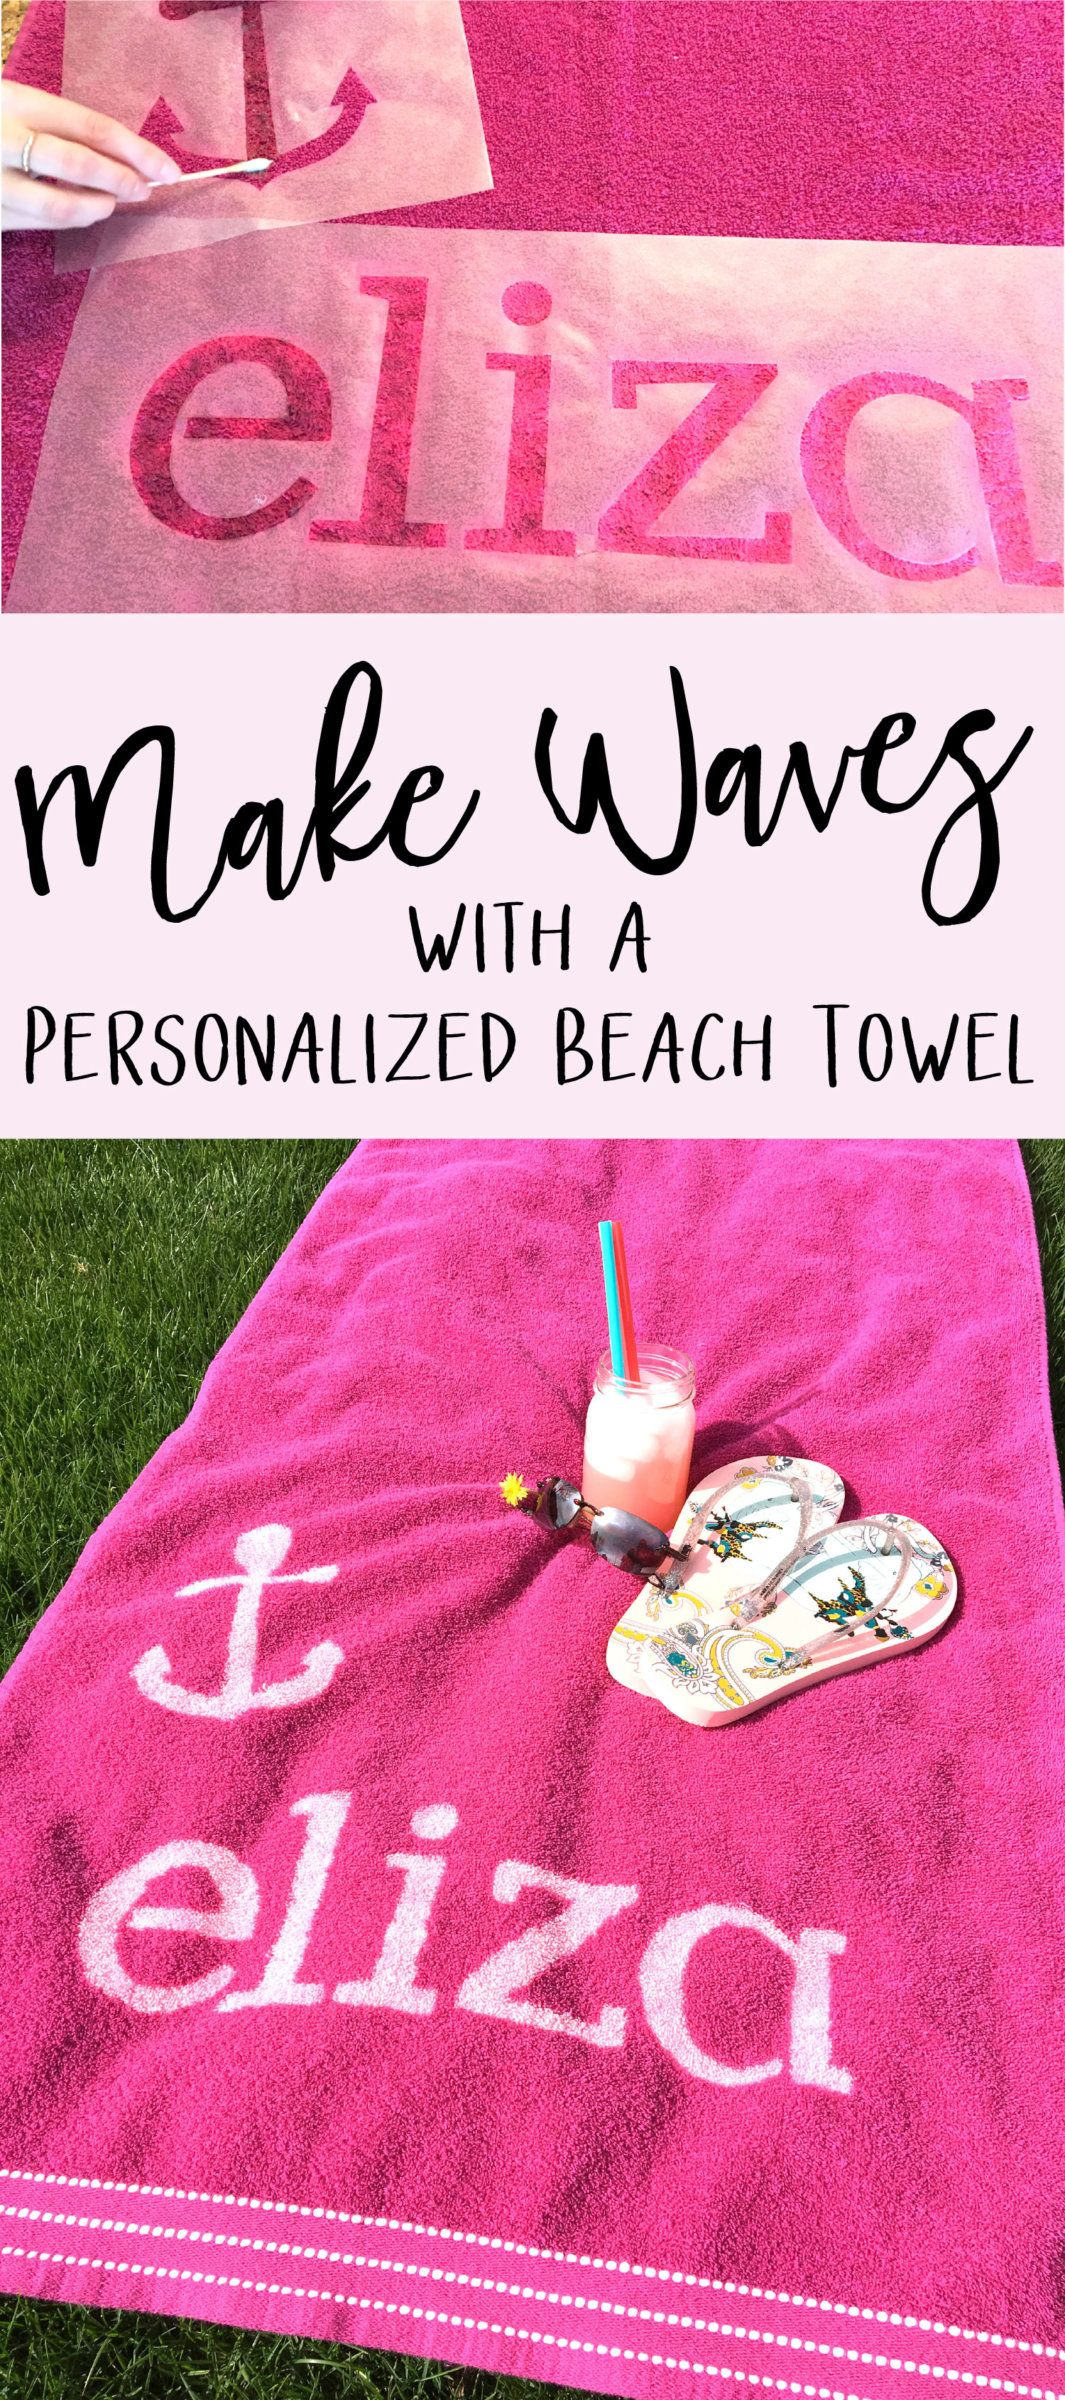 Make Waves With A Personalized Beach Towel Silhouette America